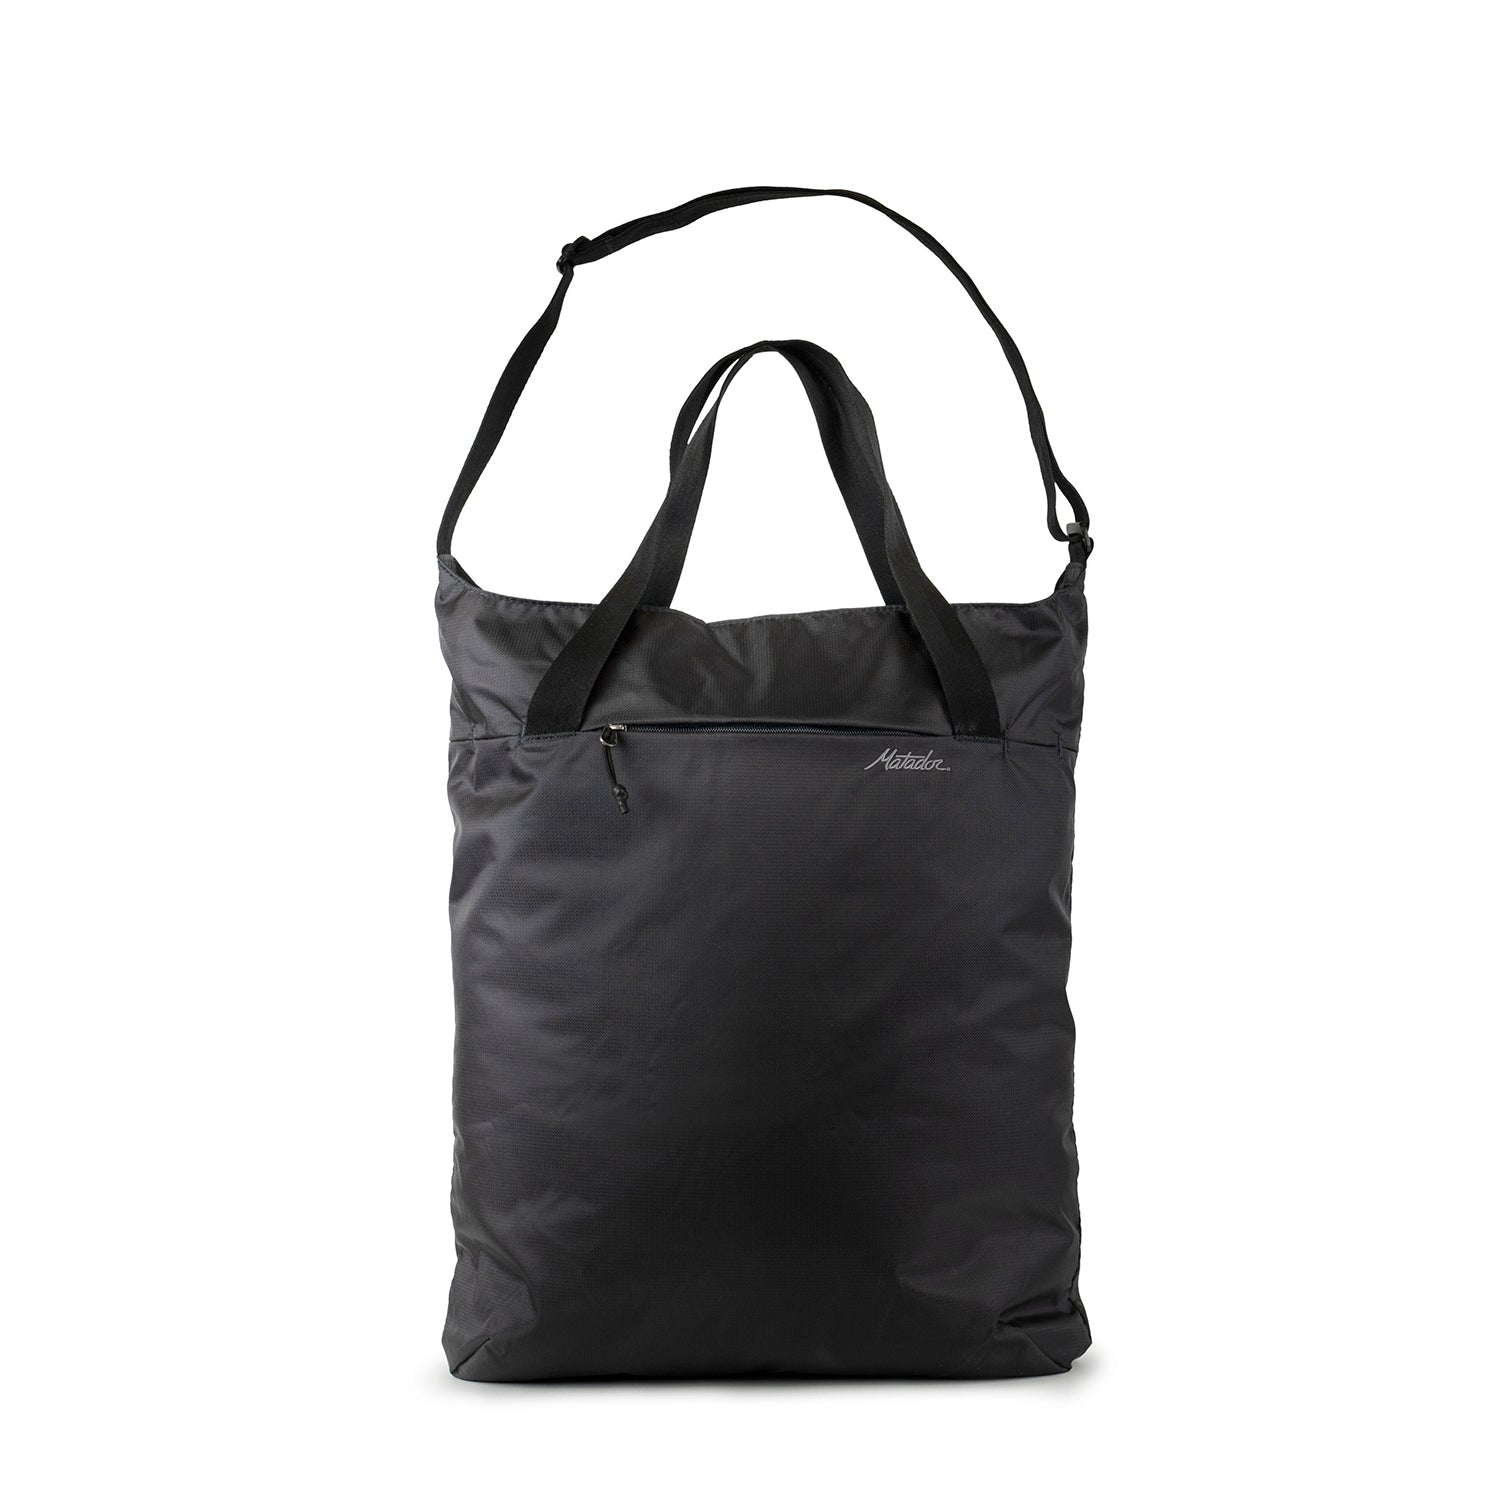 Matador Up On Grid Tote Bag - Sammenfoldig